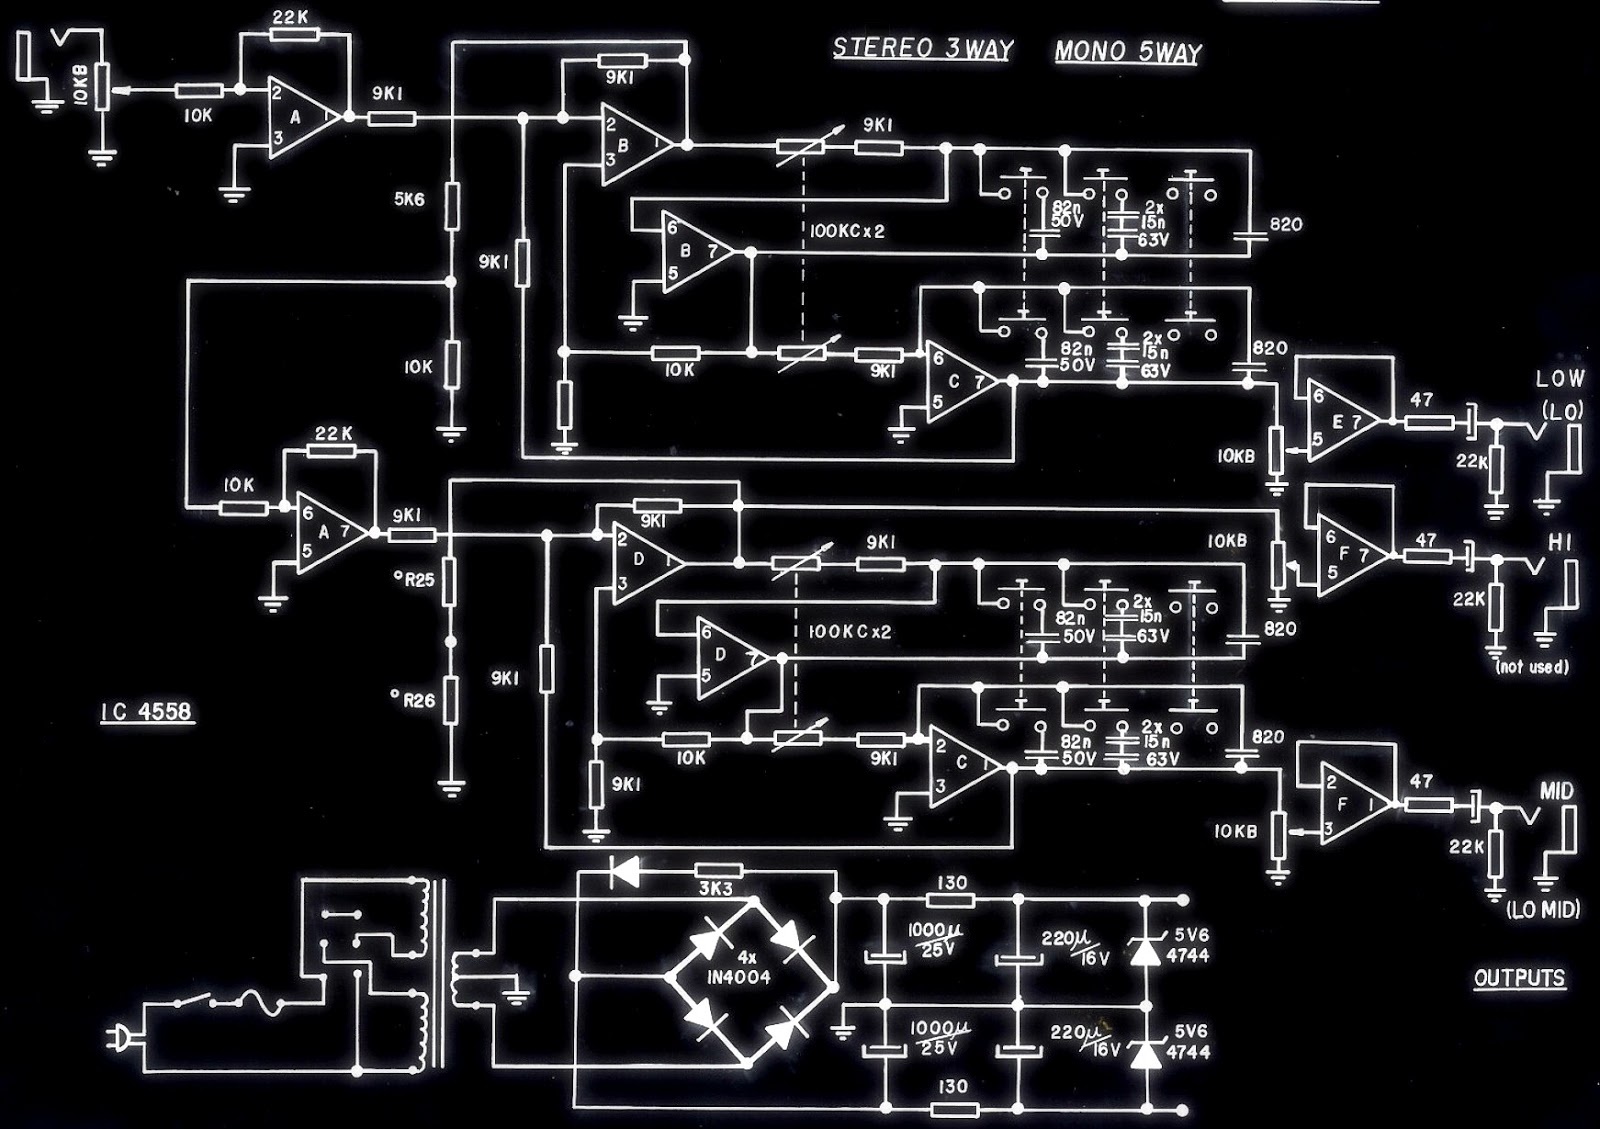 Stereo 3 Way Mono 5 Crossover And Hi Power Amplifier Using Schematic Diagram Click On The Pictures To Zoom In